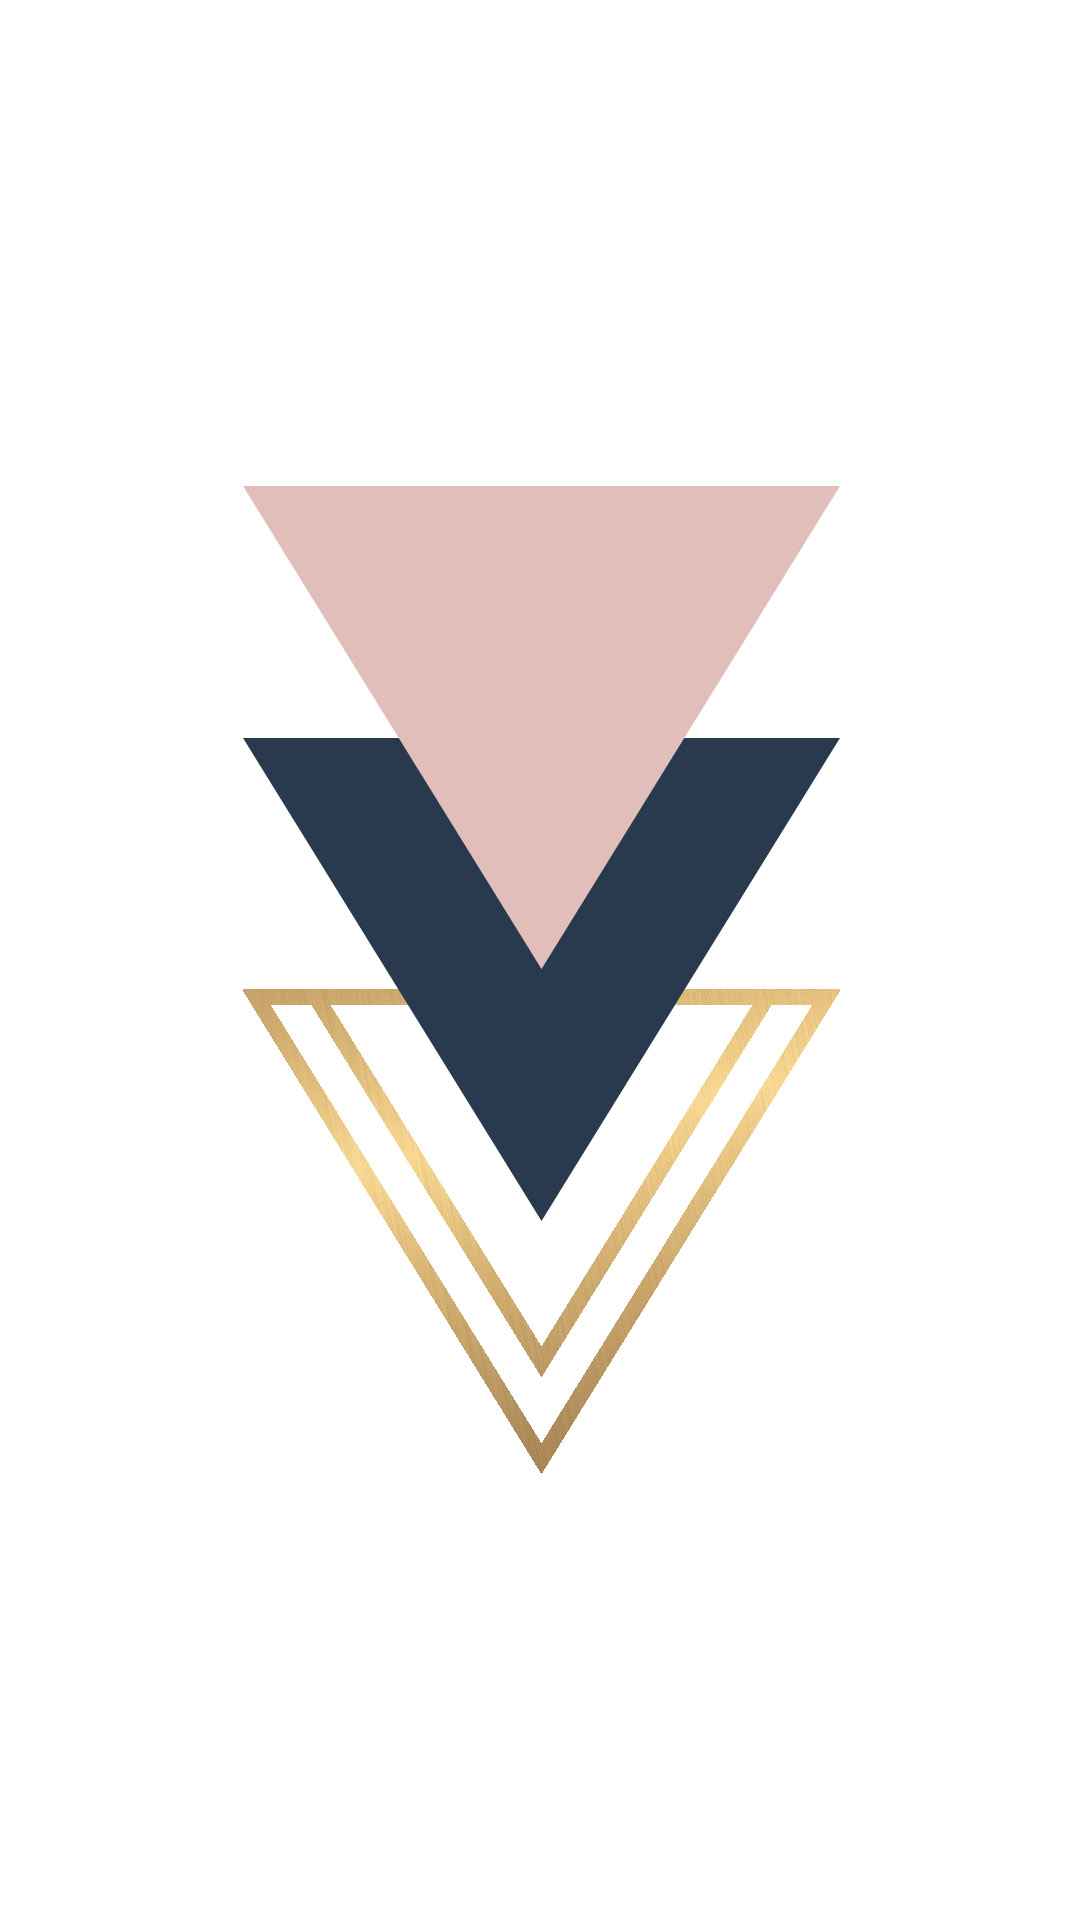 Blush-Navy-gold-foil-triangle-geo-shapes-you-can-download-for-free-on-the-blog-For-any-de-wallpaper-wp3403426